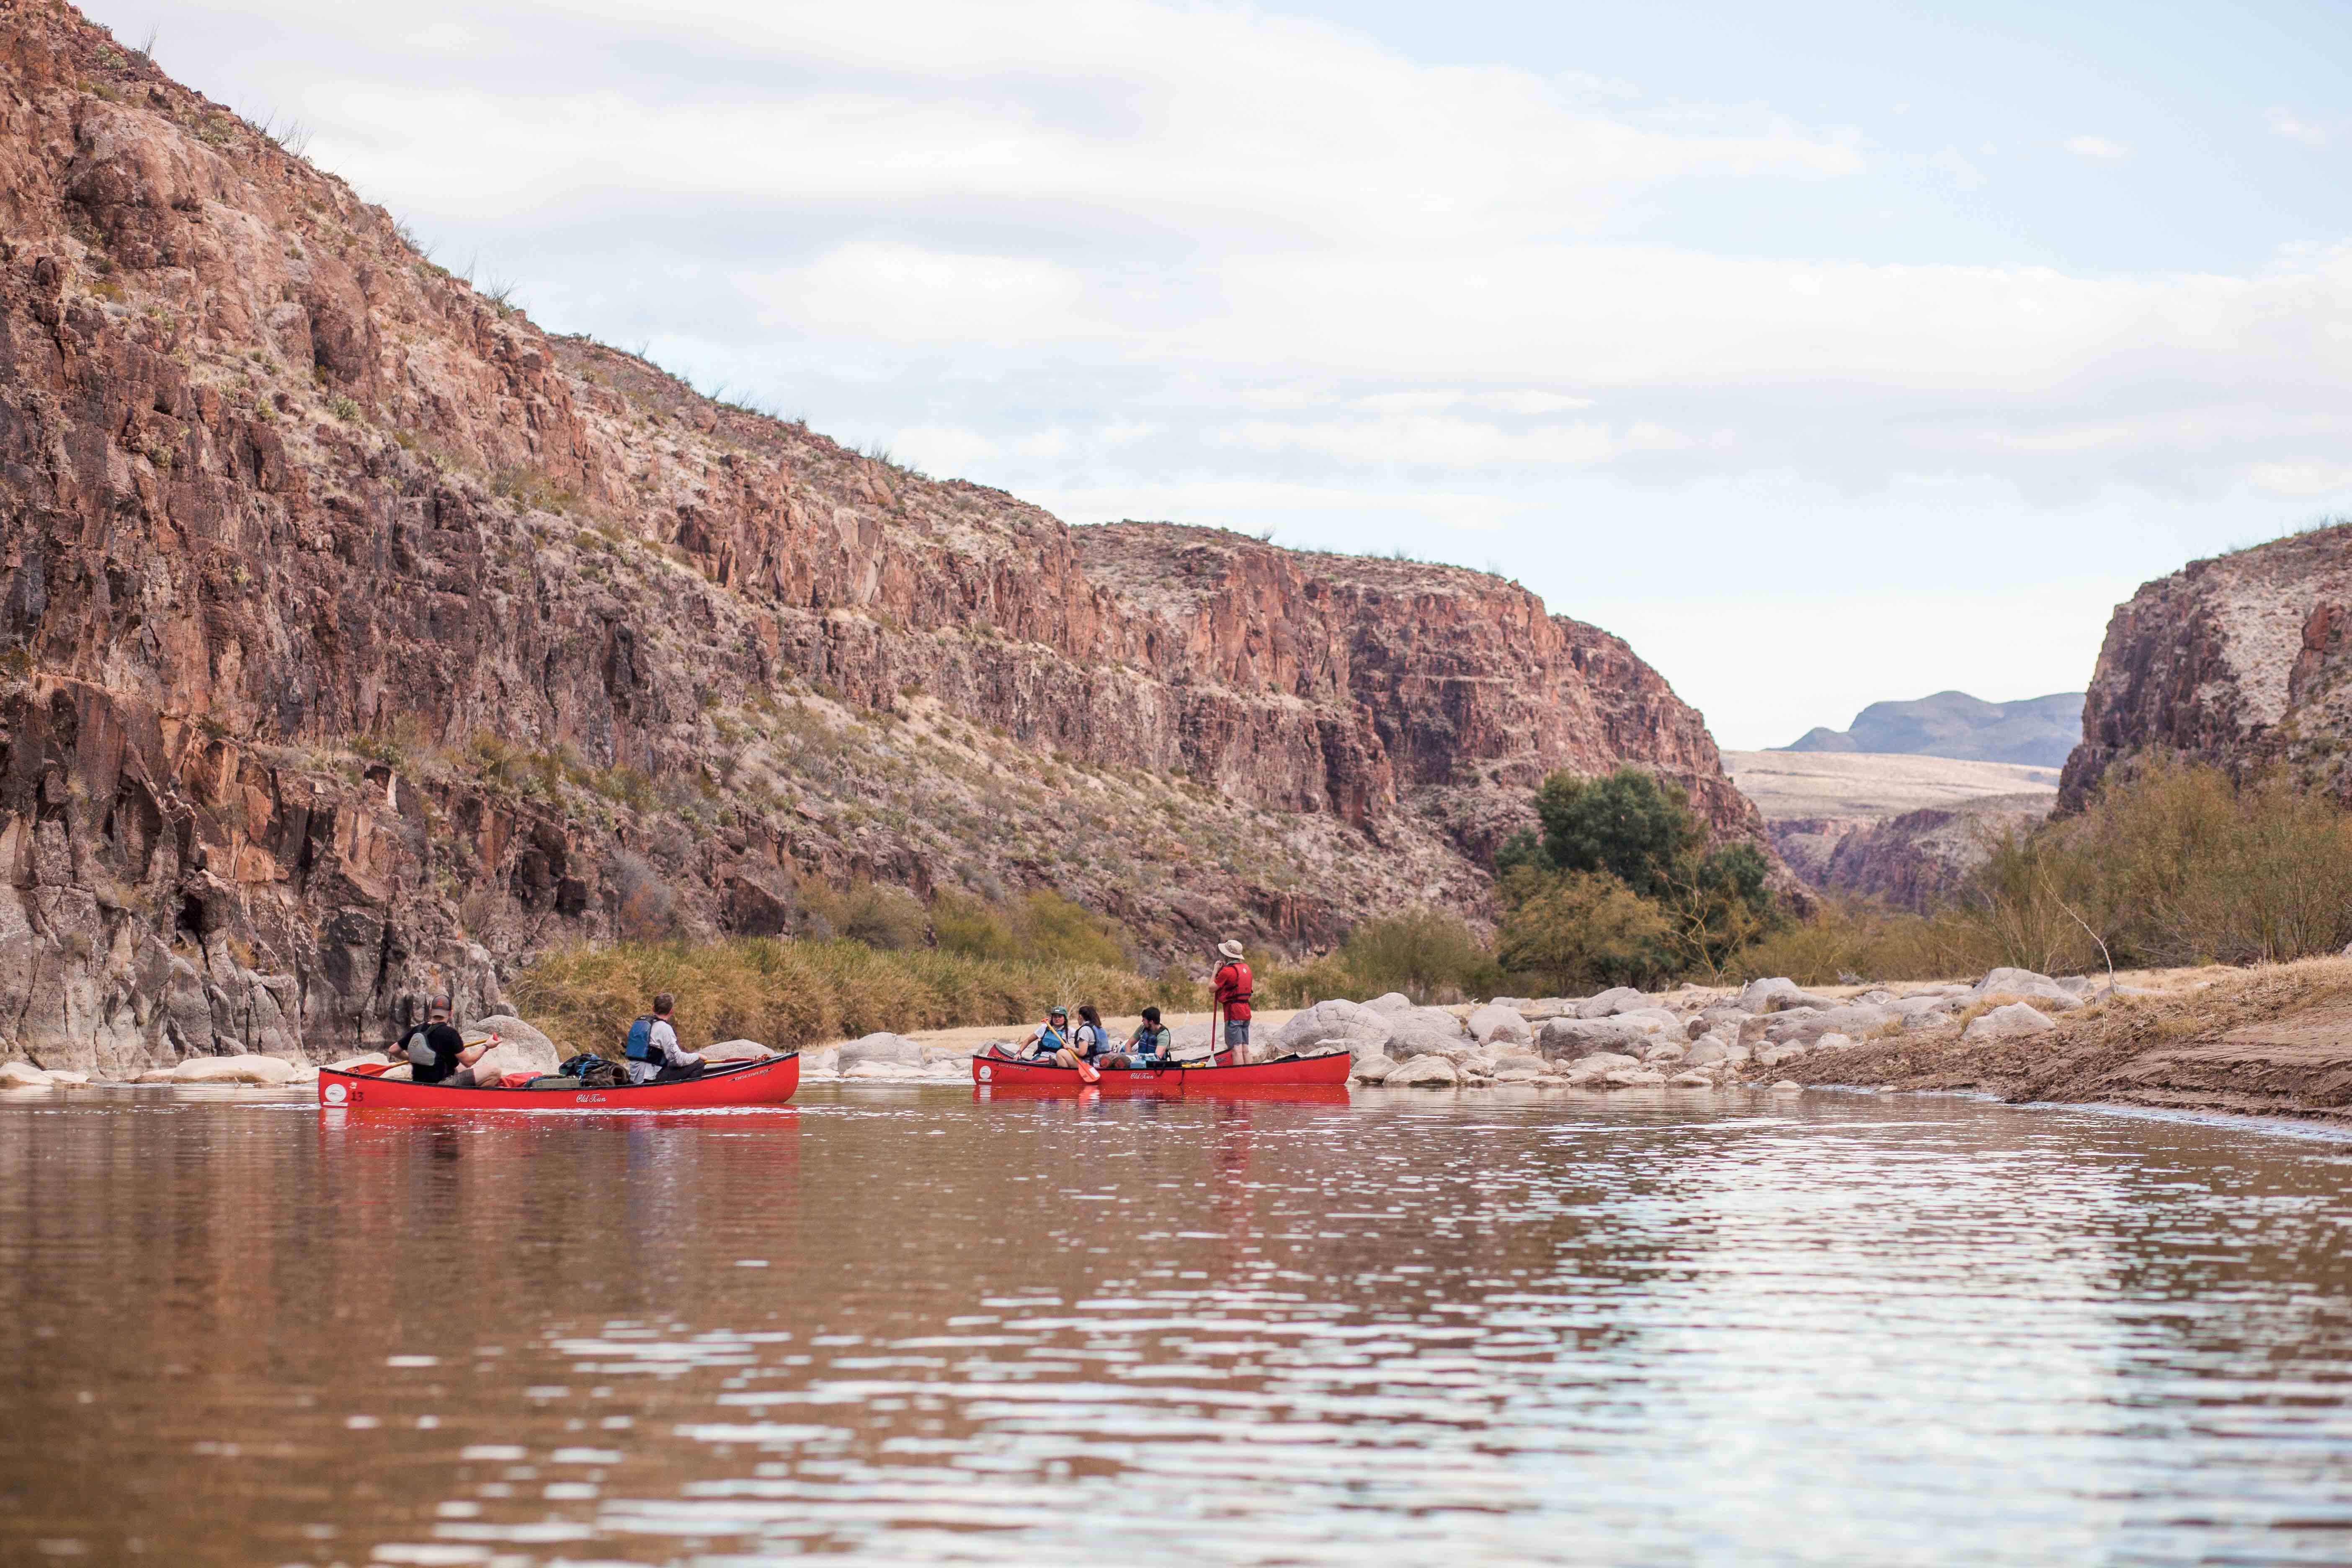 UREC Outdoors offers trips like canoeing on the Rio Grande River